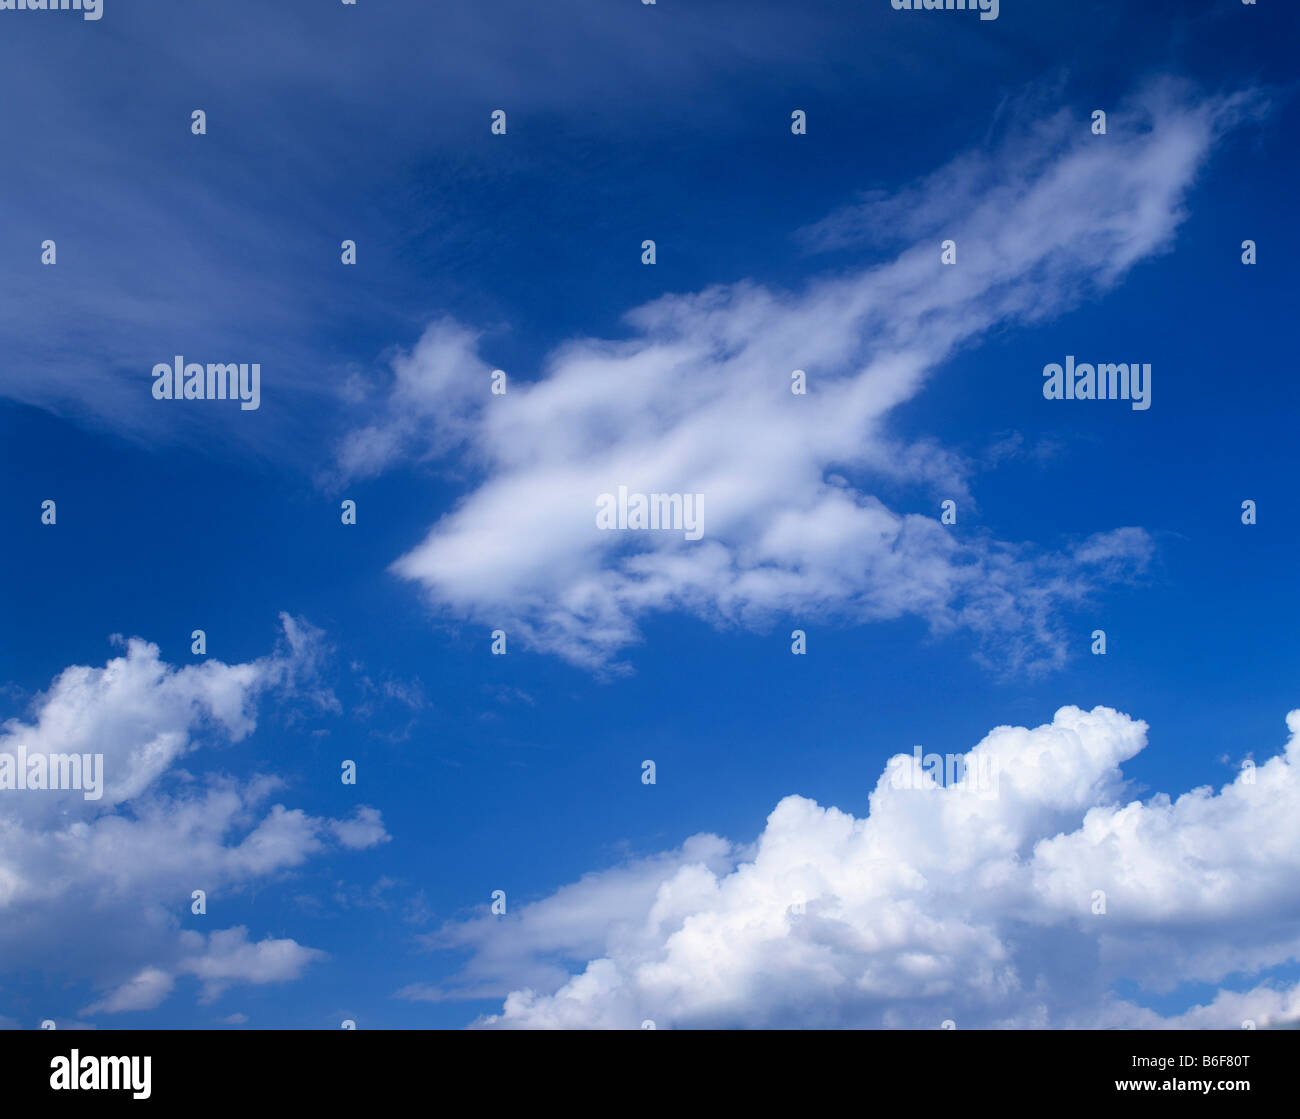 Cumulus and cirrostratus clouds in a blue sky - Stock Image